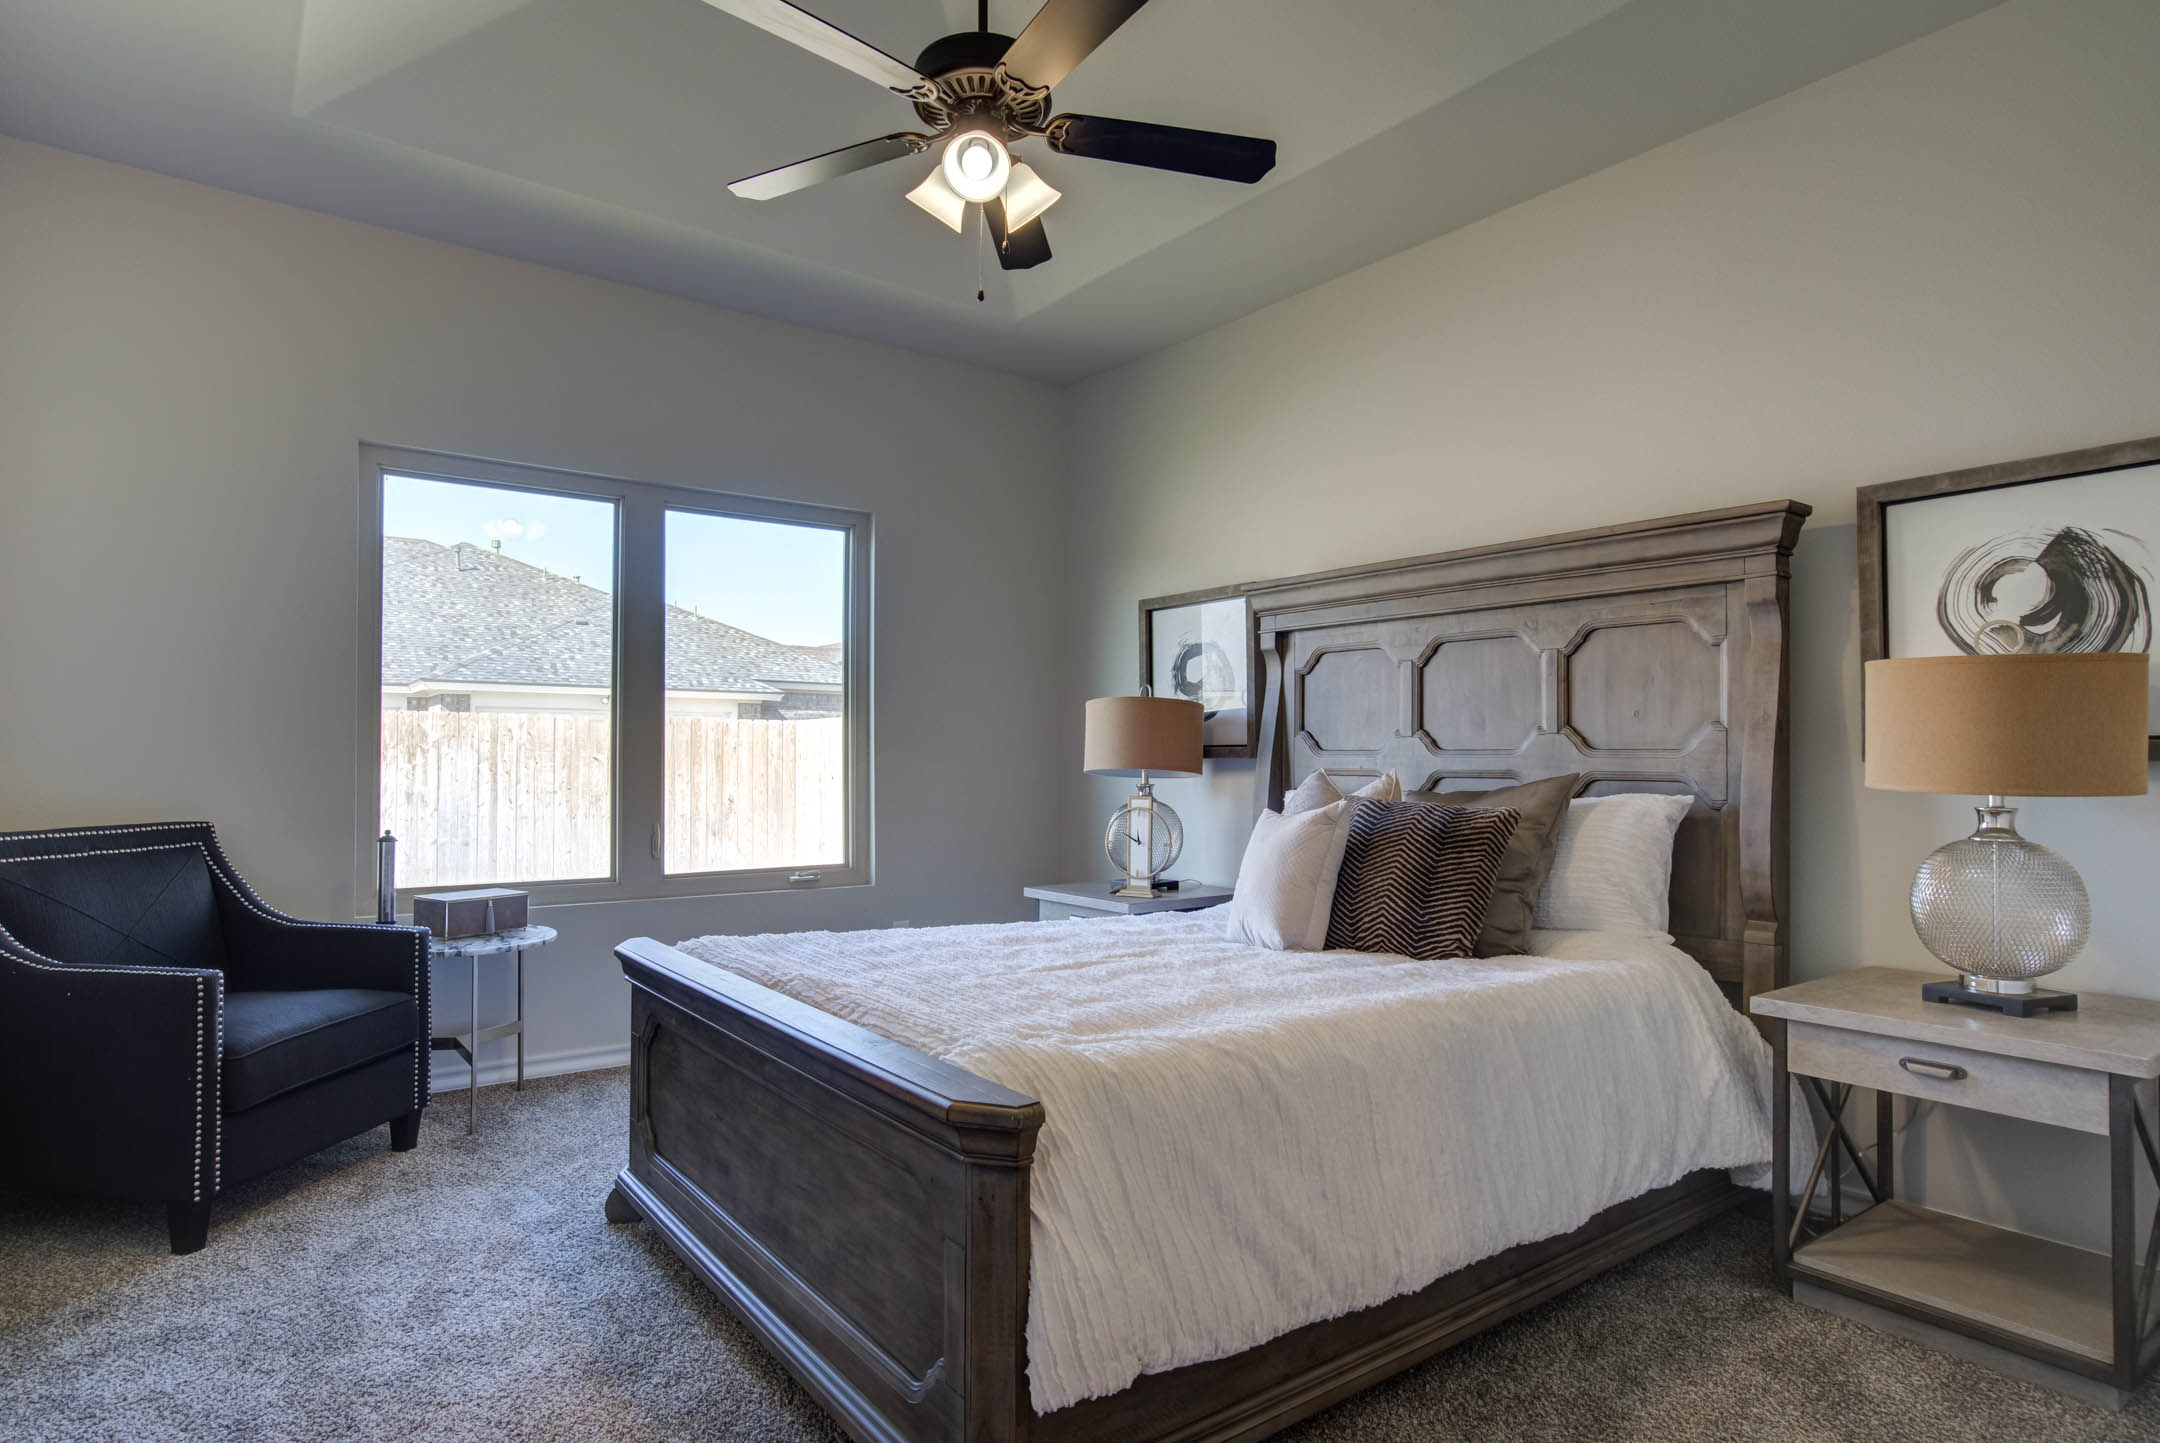 Master bedroom in new home for sale in Lubbock, Texas.